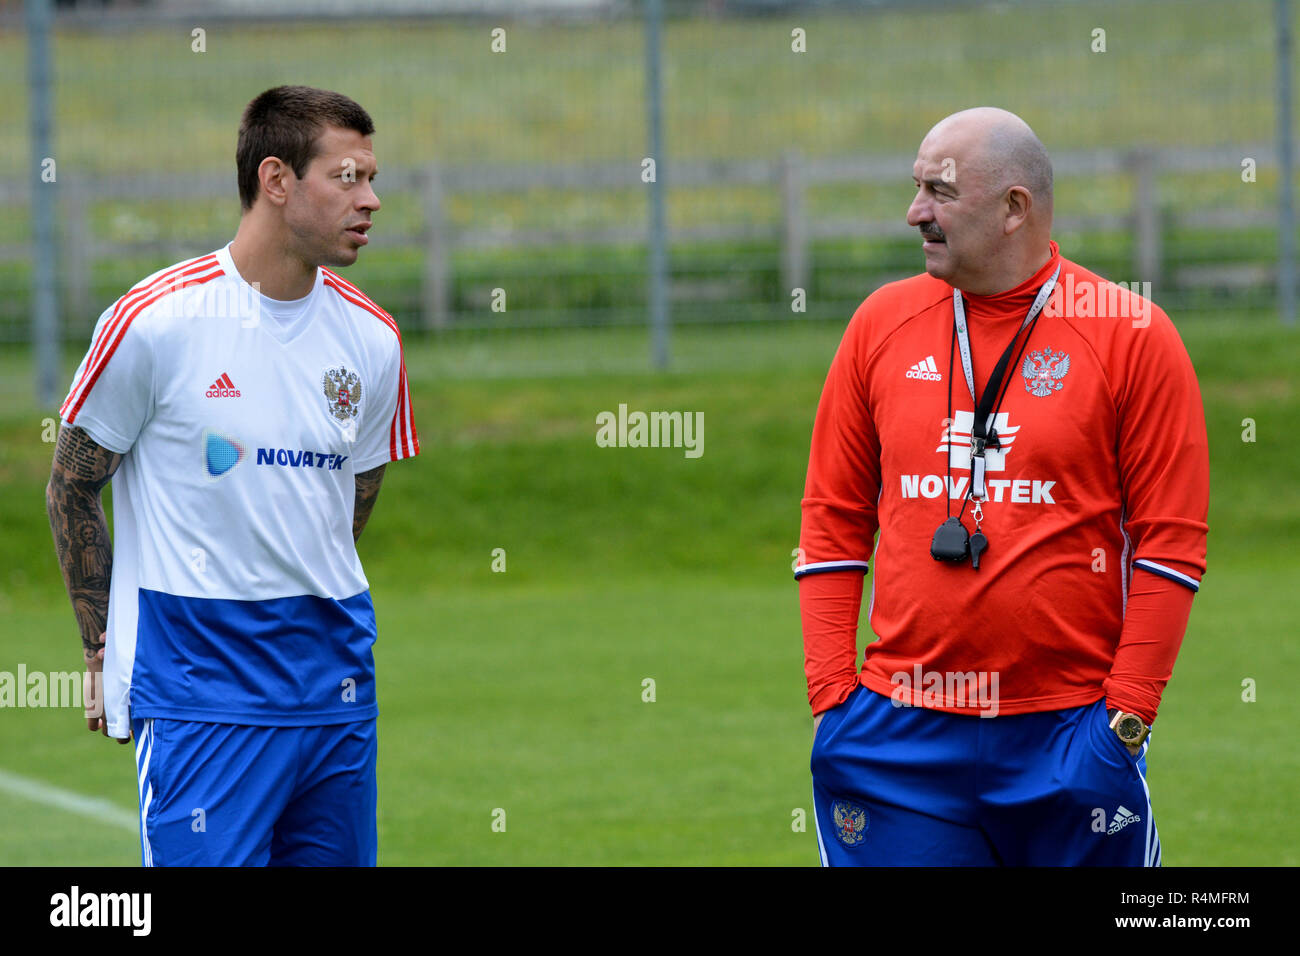 Russian national football team coach Stanislav Cherchesov with striker Fedor Smolov during training camp in Neustift, Austria. - Stock Image